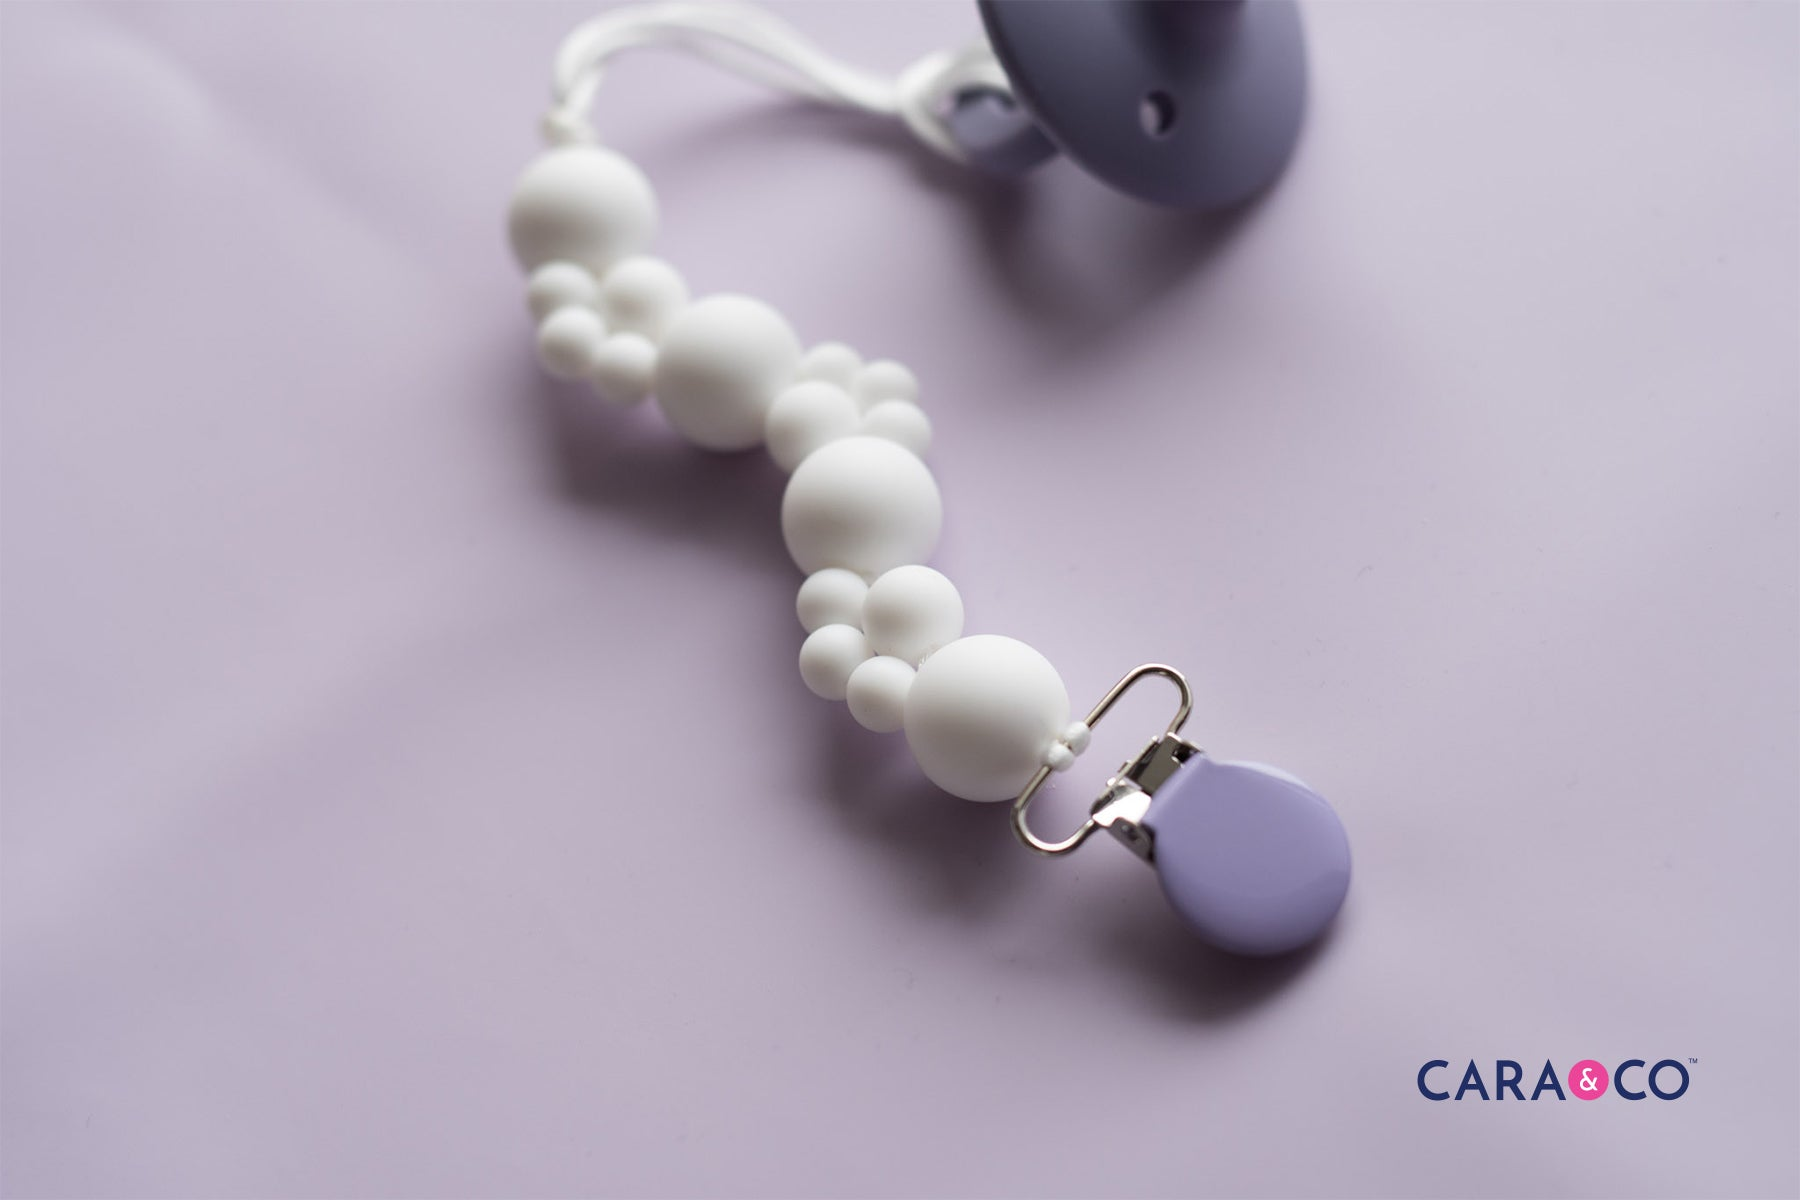 Modern Soother Clip Design